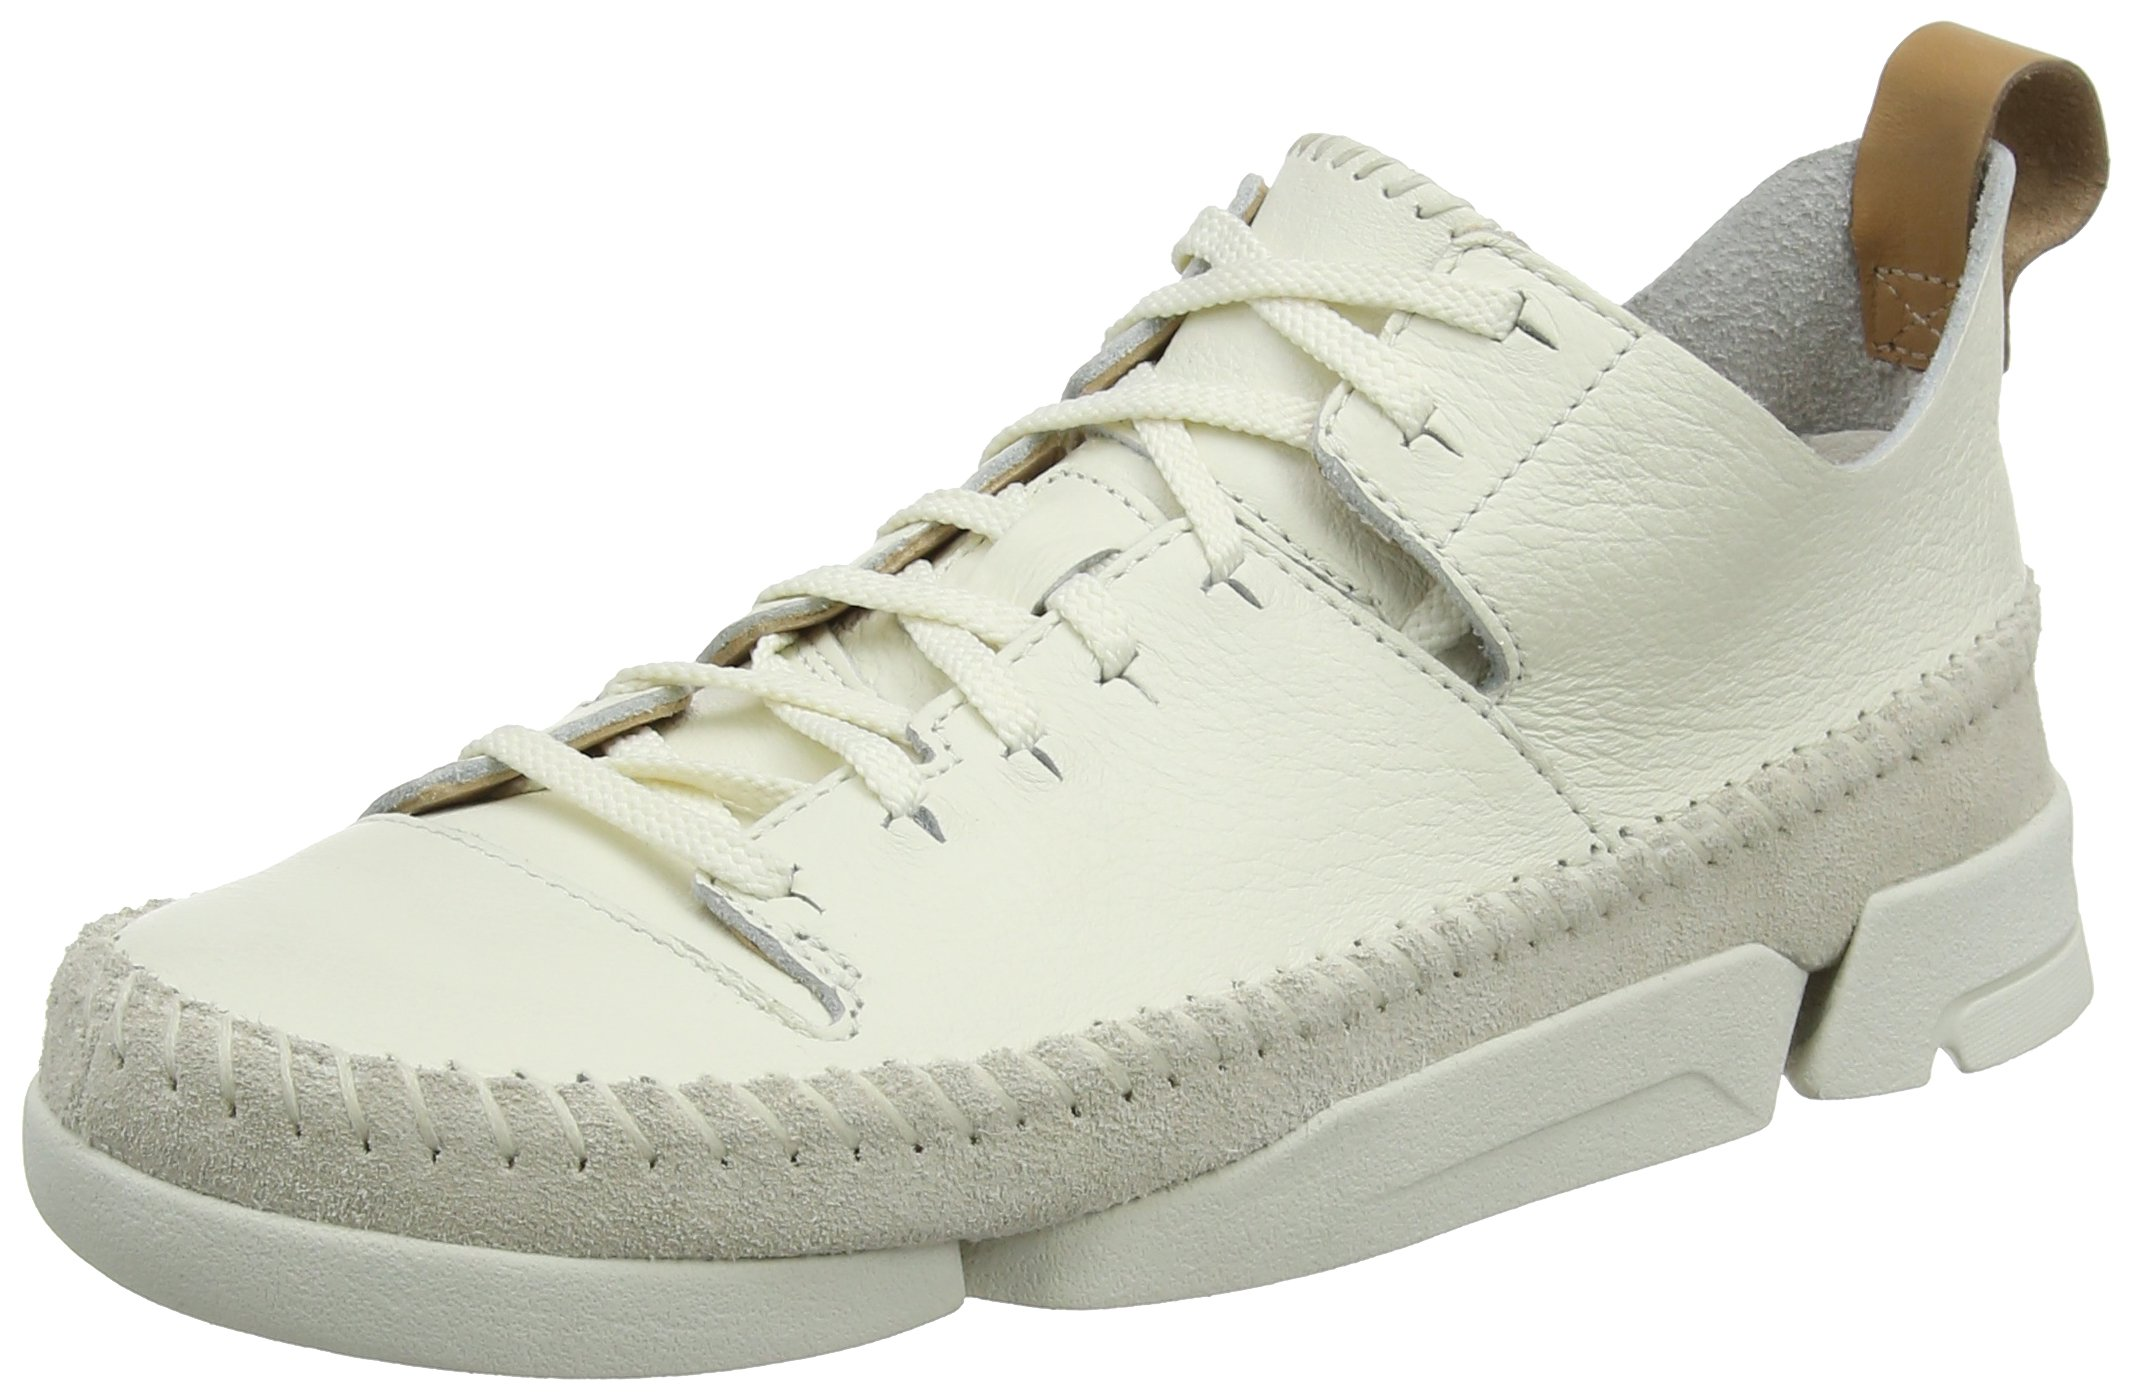 Clarks Originals Trigenic Flex 女士低帮运动鞋